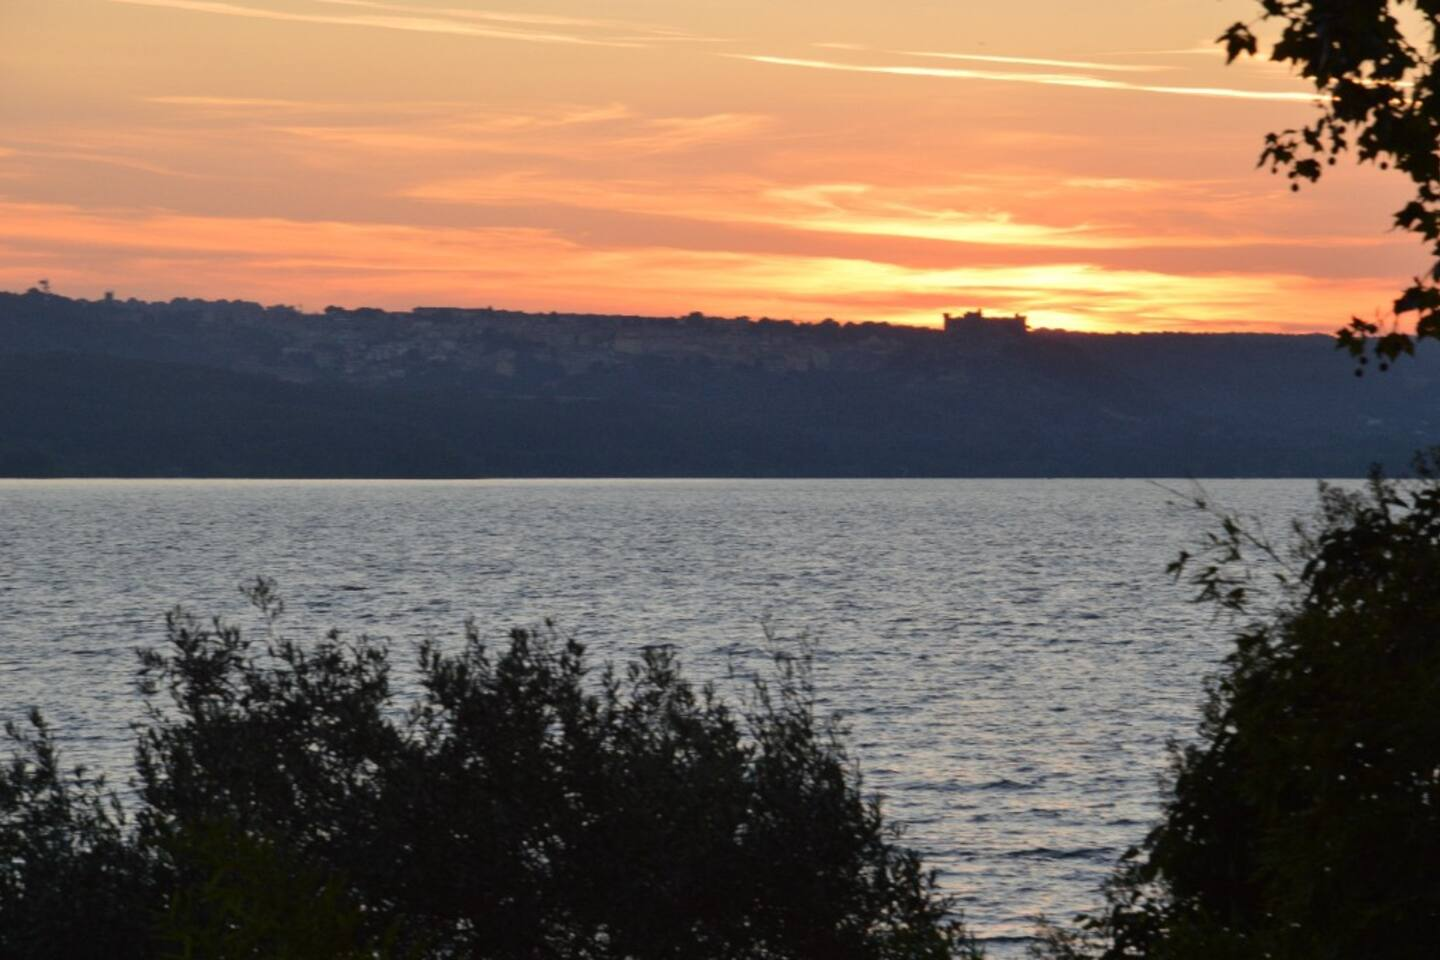 B&B Loto - Villa in the Park on the Bracciano lake - Bed and ...